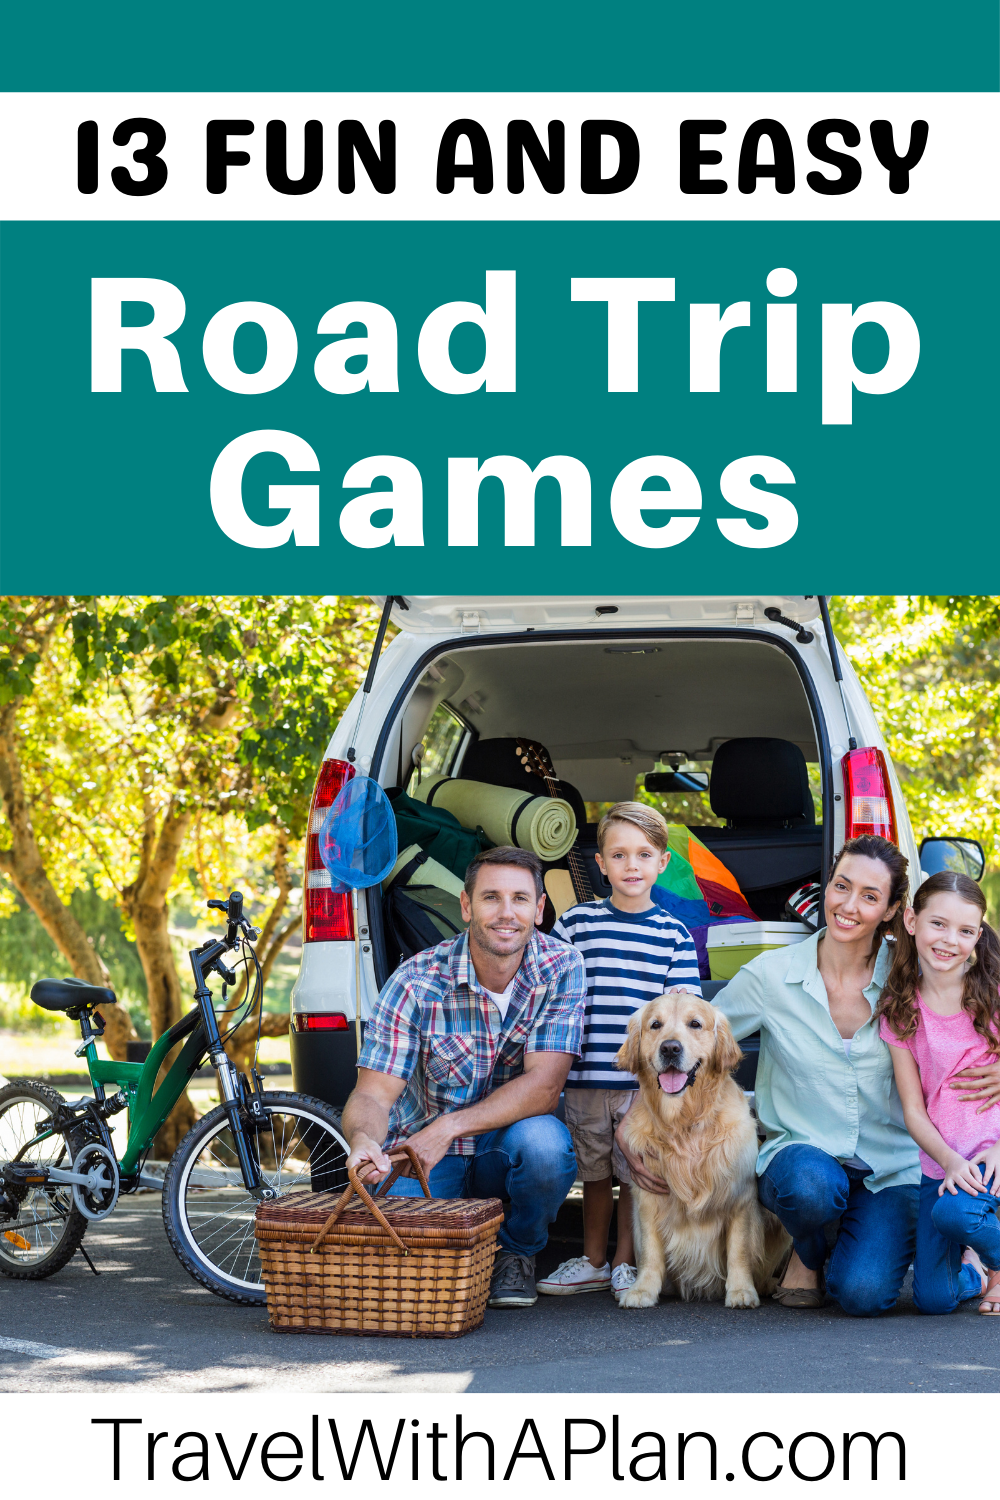 Click here to discover directions for 13 fun and easy road trip word games to play in the car with kids.  From Top US Family Travel Blog, Travel With A Plan!  #roadtriptips #familytravel